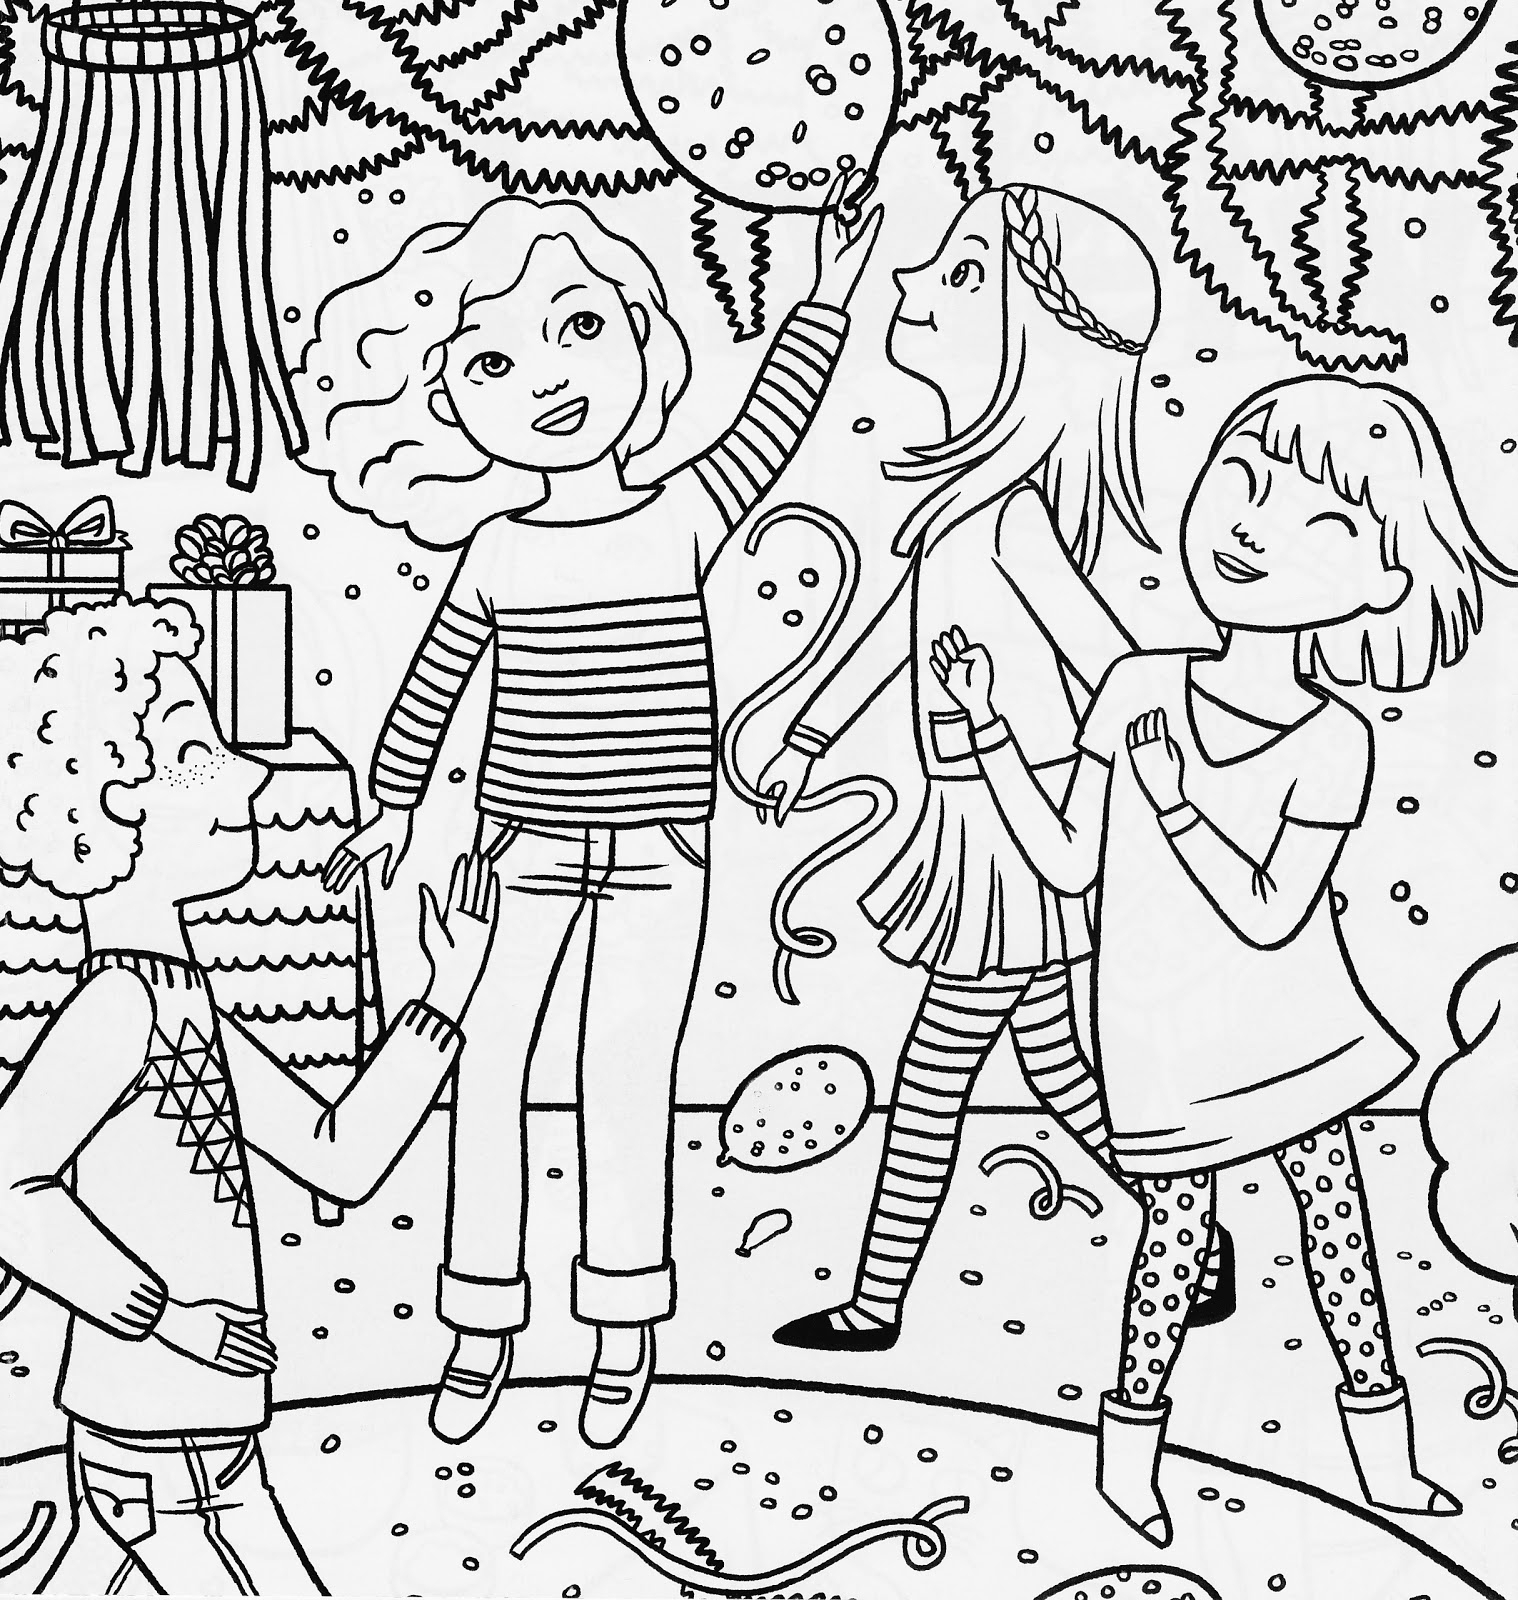 drawing of birthday celebration ; drawing-pictures-of-birthday-party-coloring-pages-birthday-party-many-interesting-cliparts